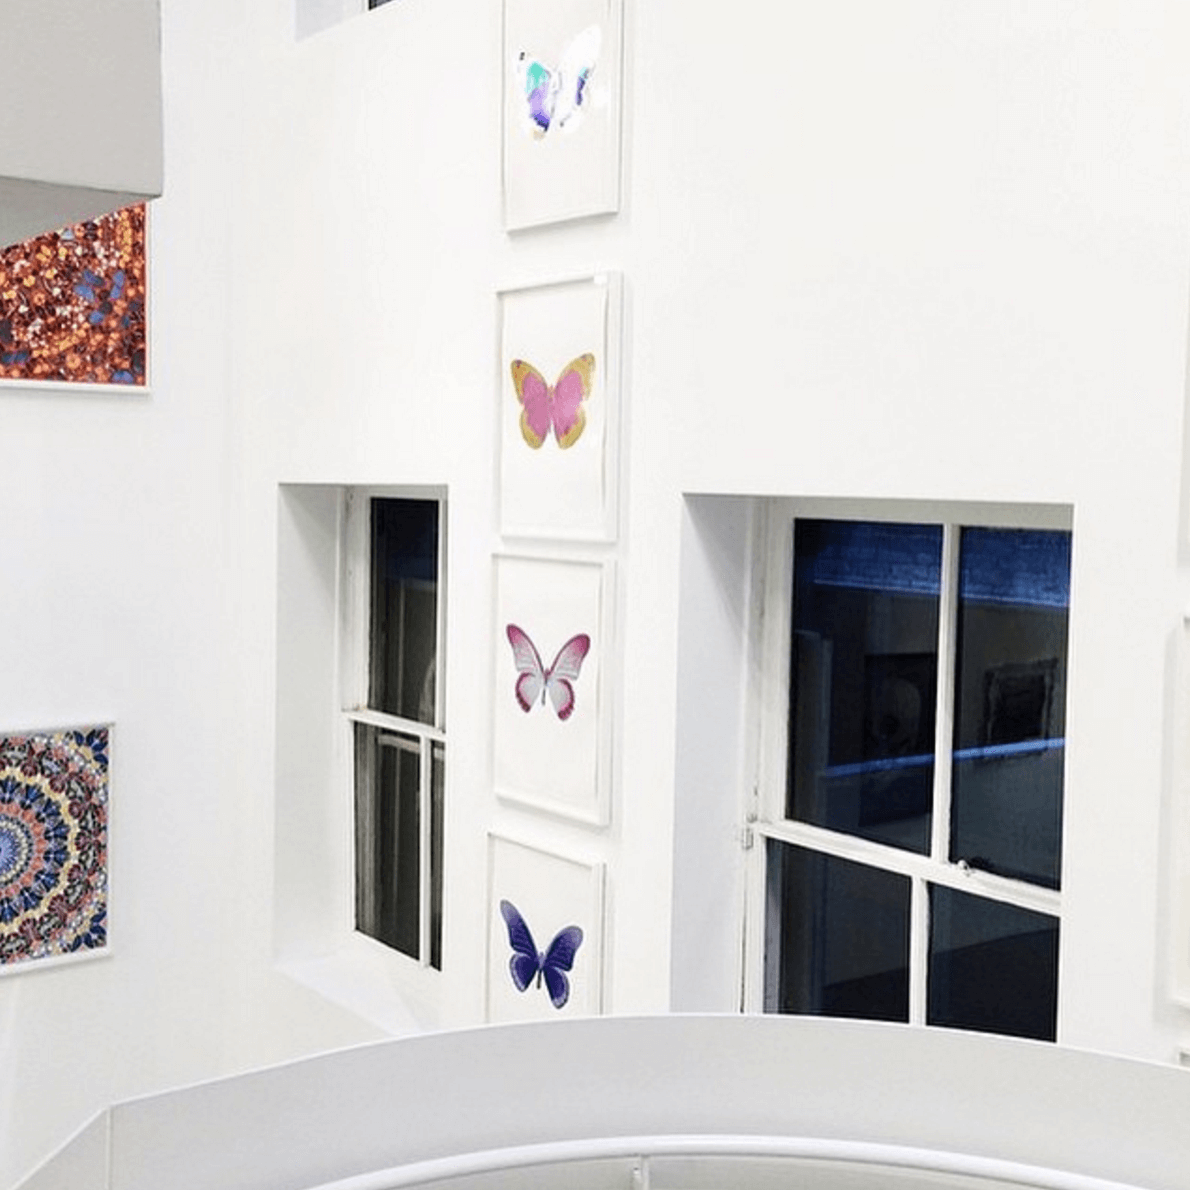 Shop Home and Kids Other Criteria Damien Hirst Single Butterfly Prints